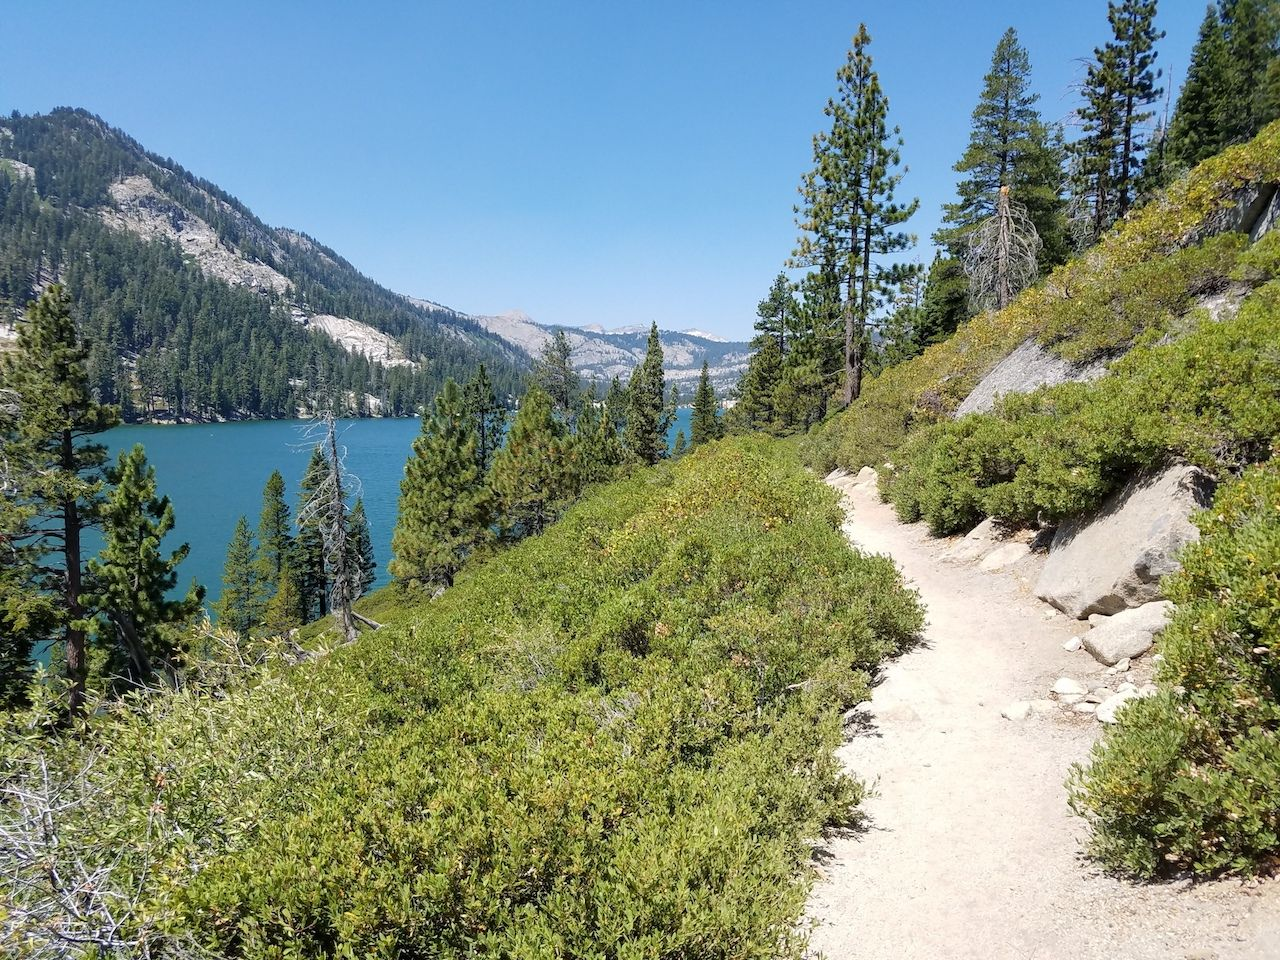 View of Echo lake from Tahoe rim and the Pacific crest trail